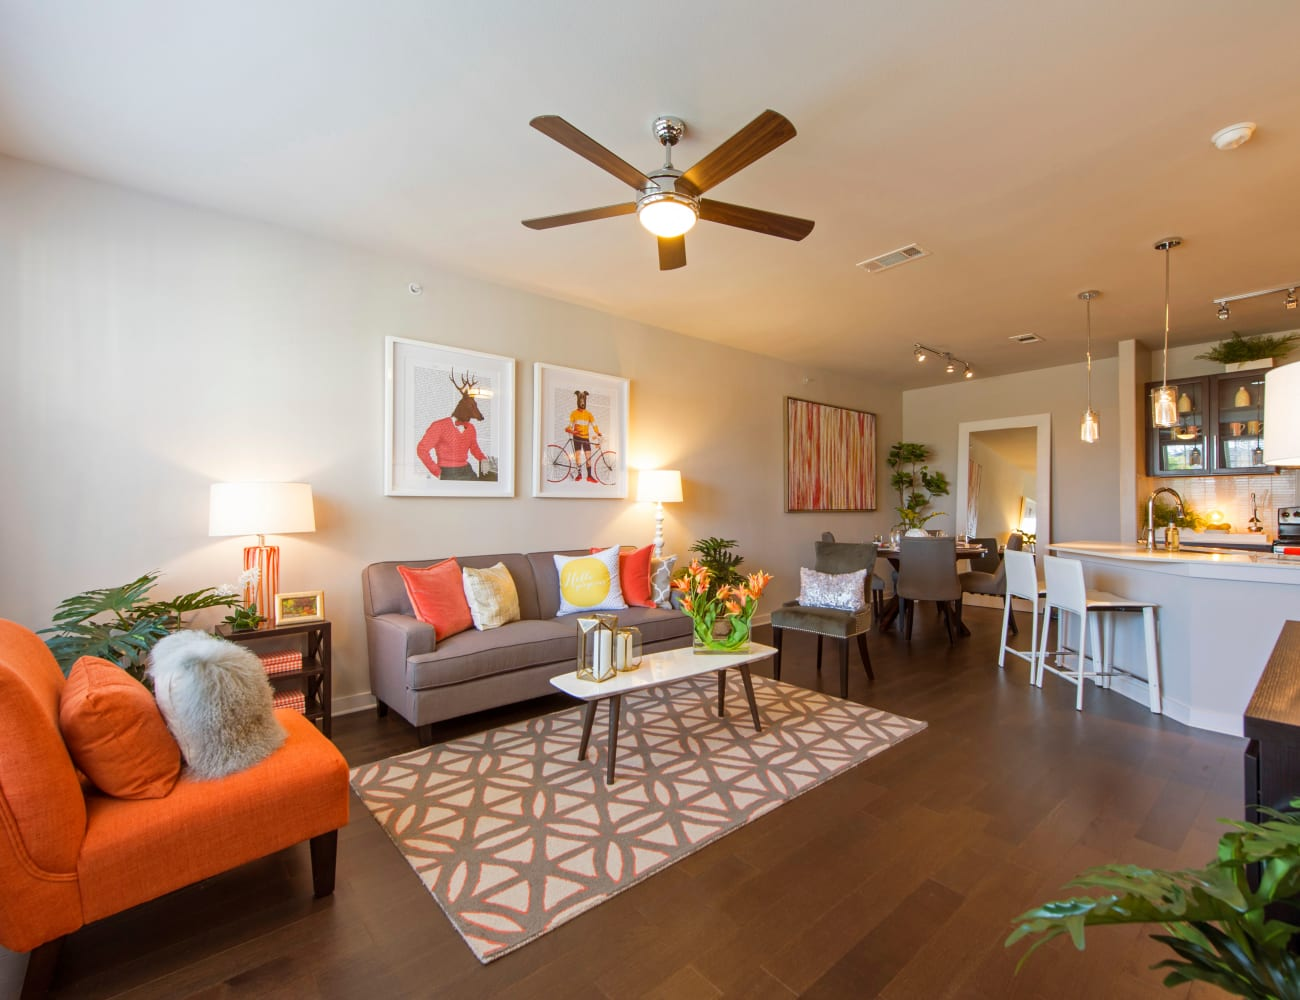 Open-concept layout with hardwood floors at Elite 99 West in Katy, Texas